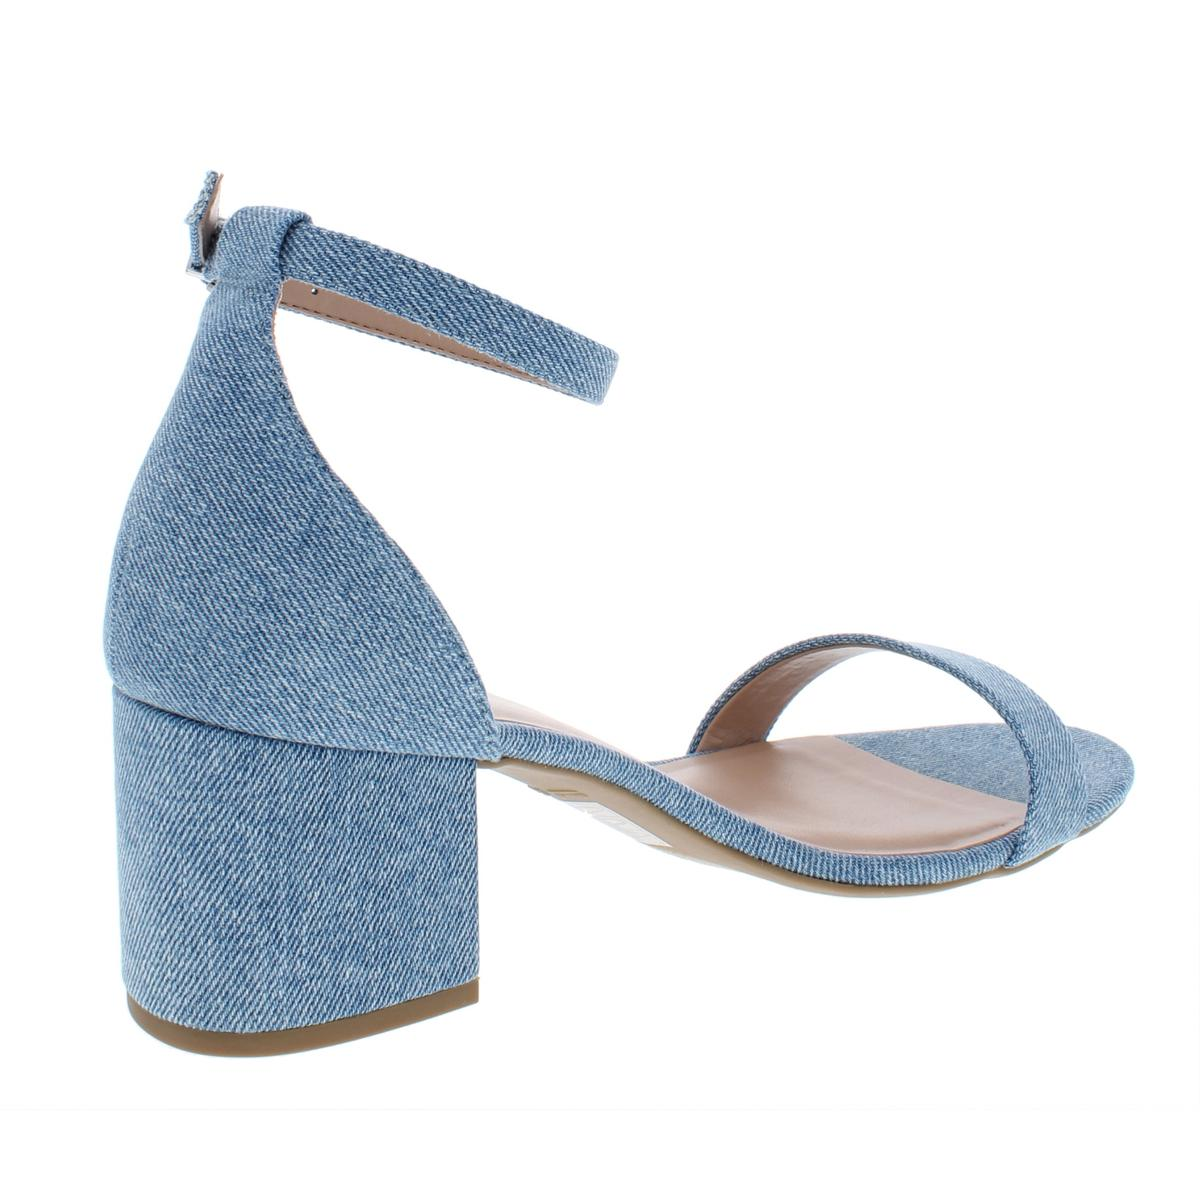 Call-It-Spring-Womens-Stangarone-Dress-Sandals-Shoes-BHFO-5456 thumbnail 7